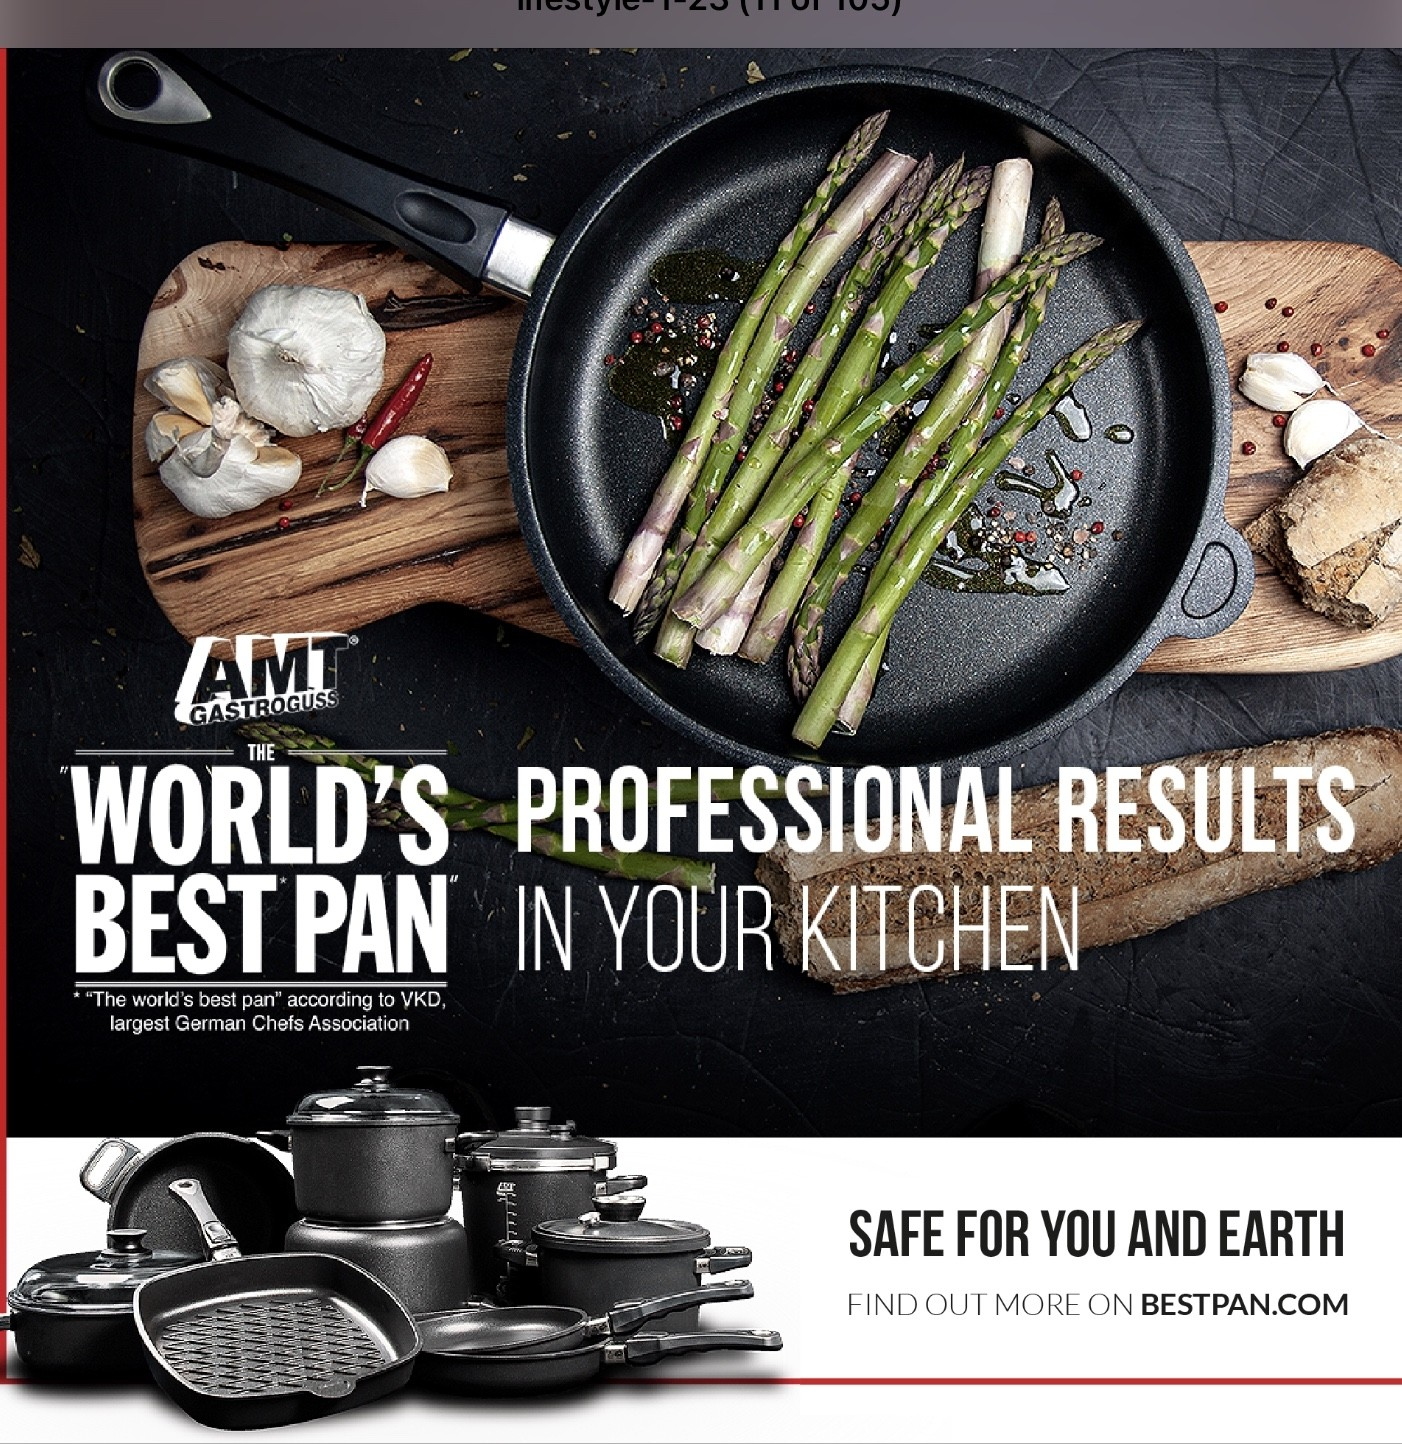 Treat yourself to the worlds best pan at smithsofloughton.com